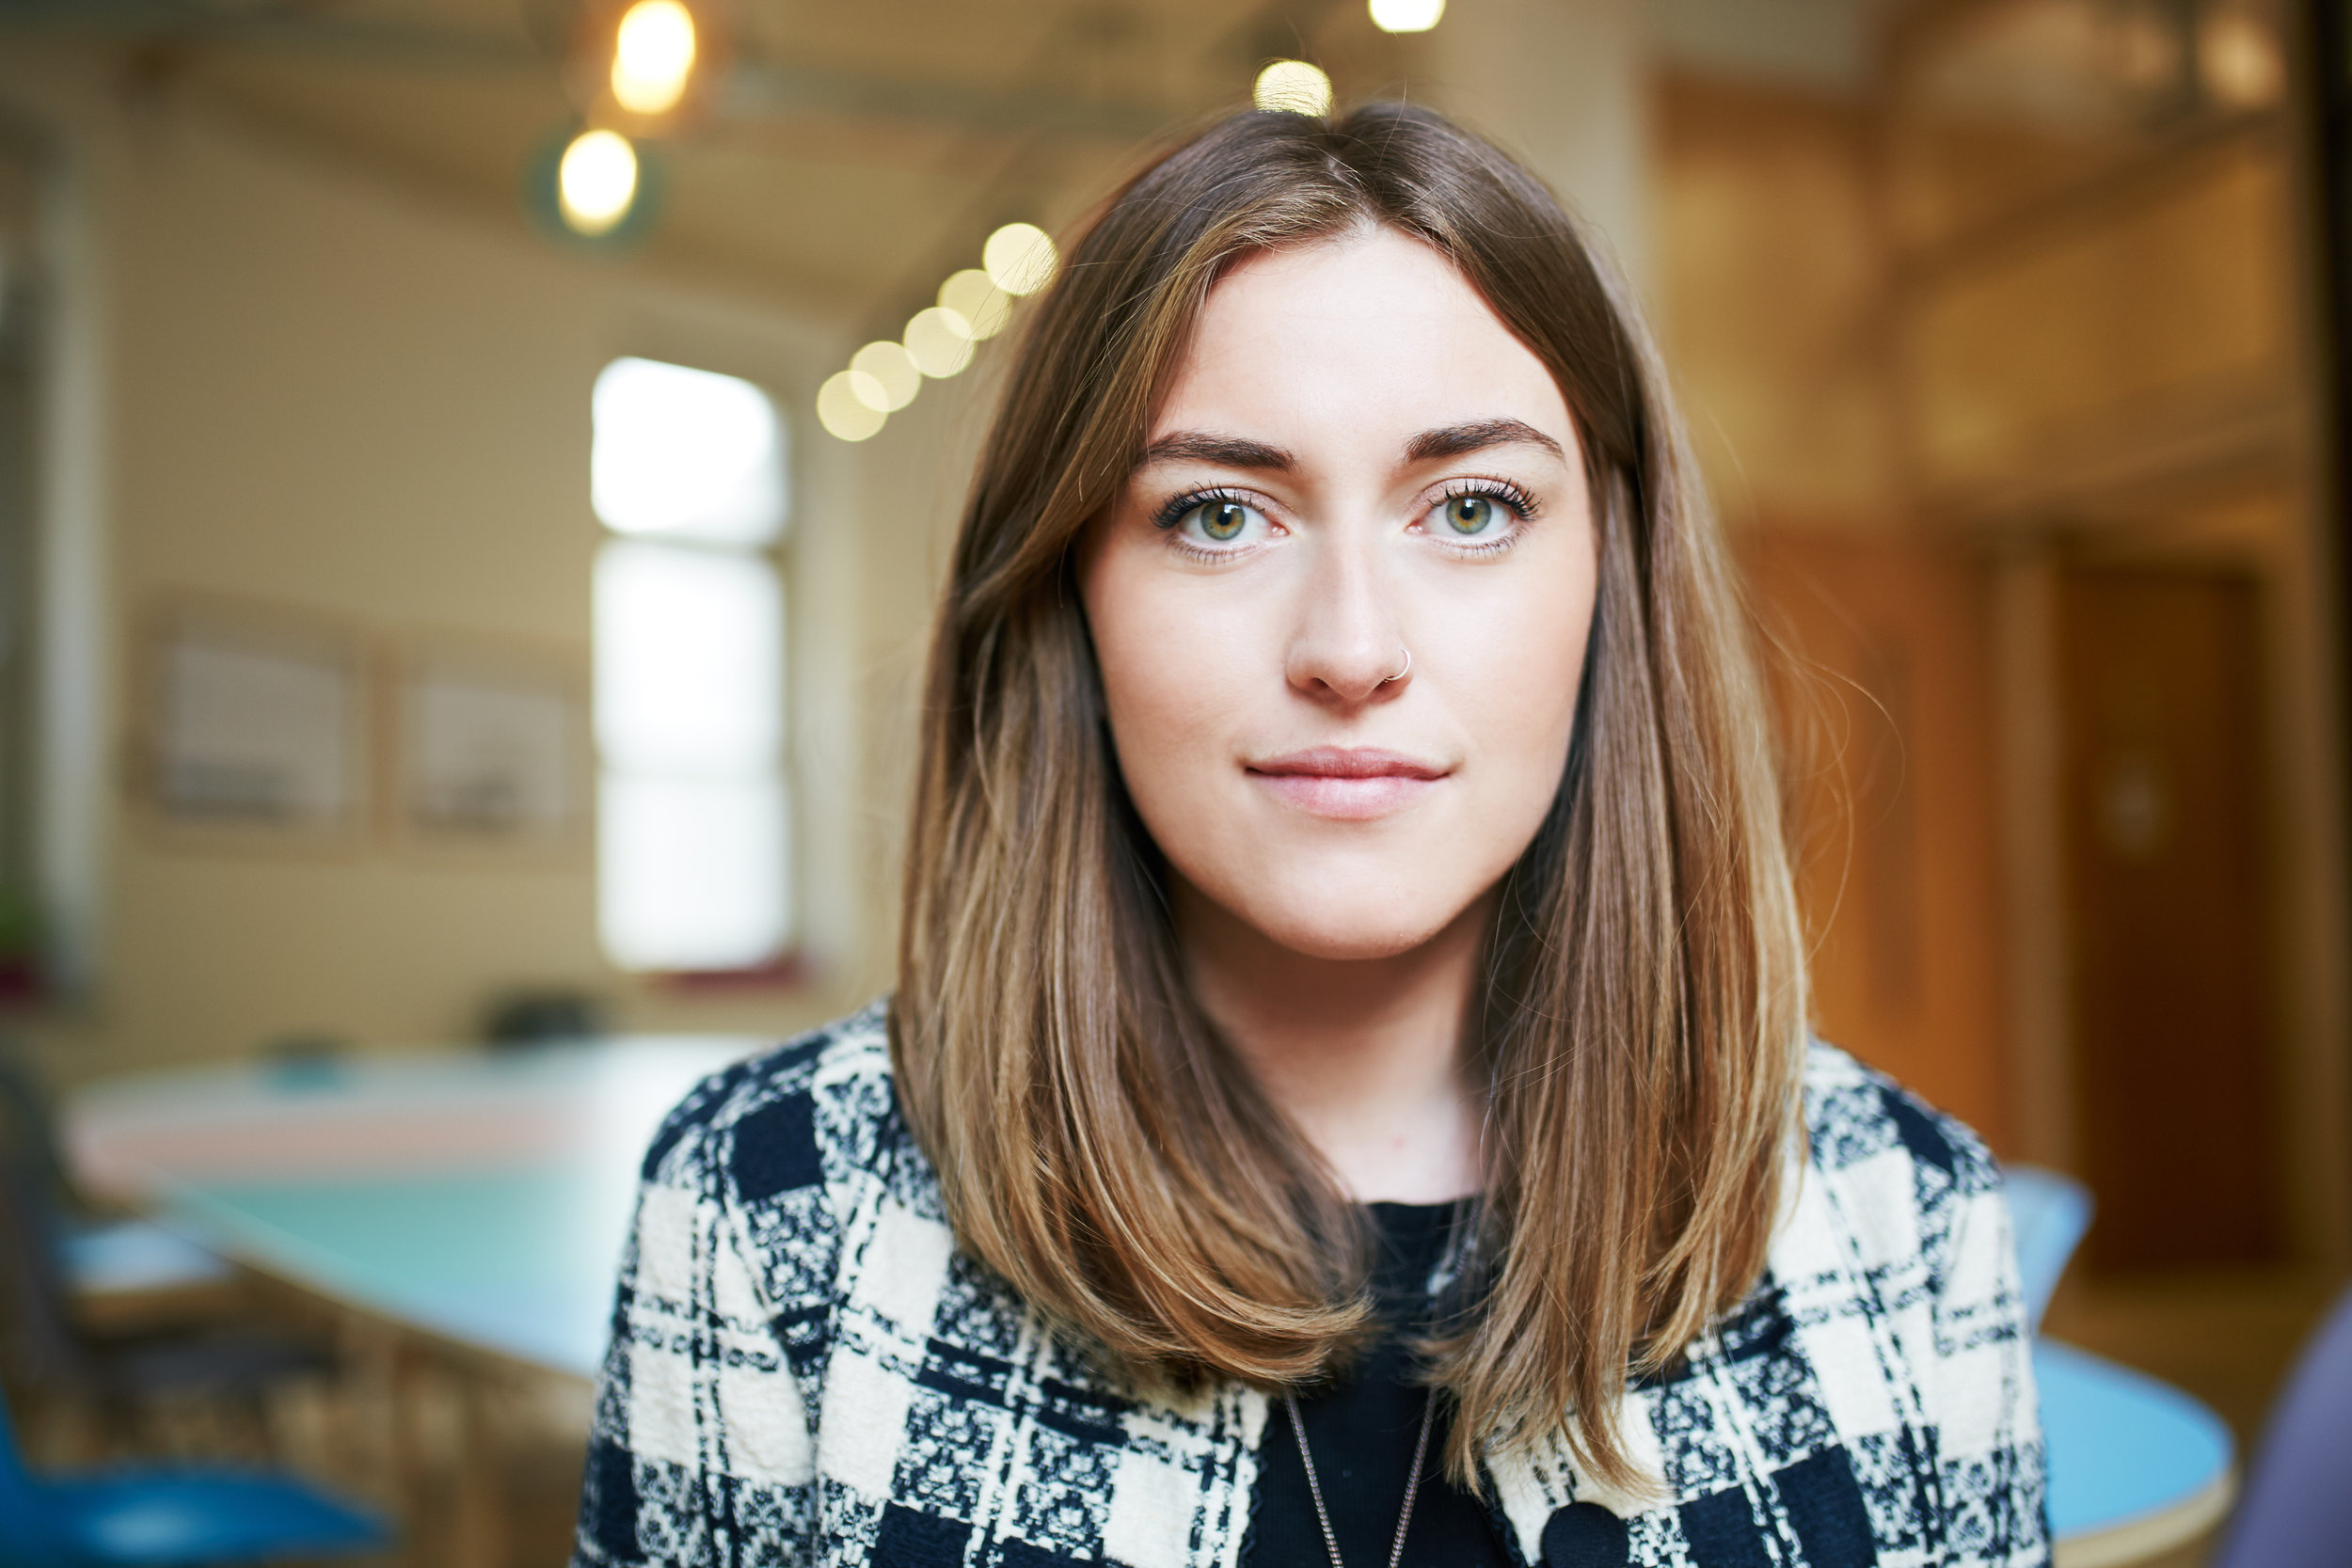 Georgie   As project manager, Georgie gets involved in a variety of things. Her main focus is the BID's greening and public art projects, but also has some exciting events in the pipeline. She has an undergraduate degree in International Politics from Liverpool University.